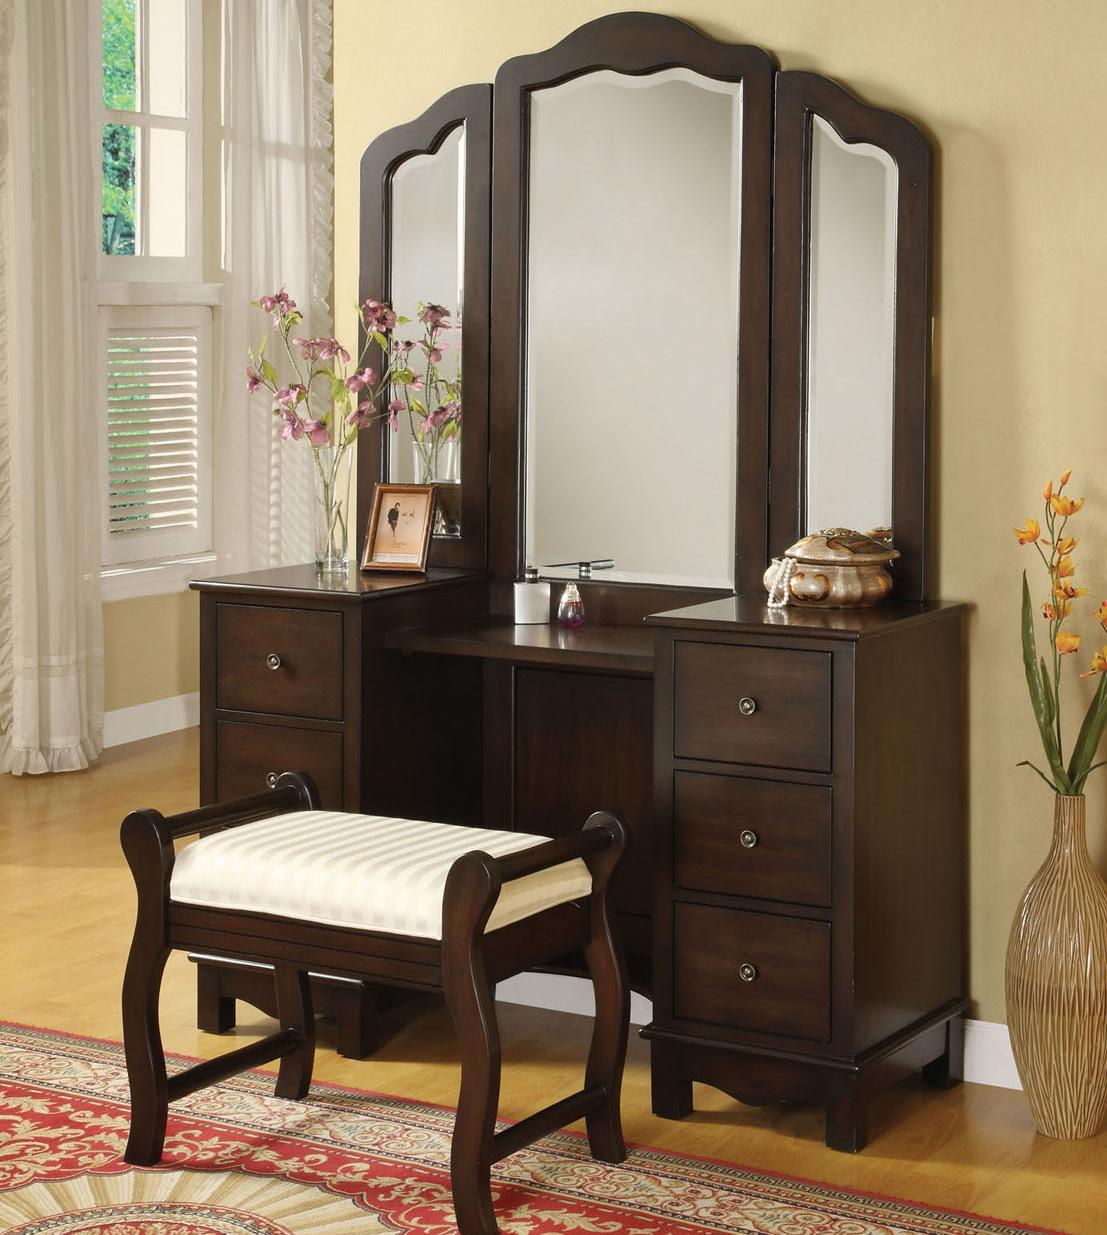 Acme Furniture Annapolis Vanity Set With Upholstered Stool Del Sol Furniture Vanity